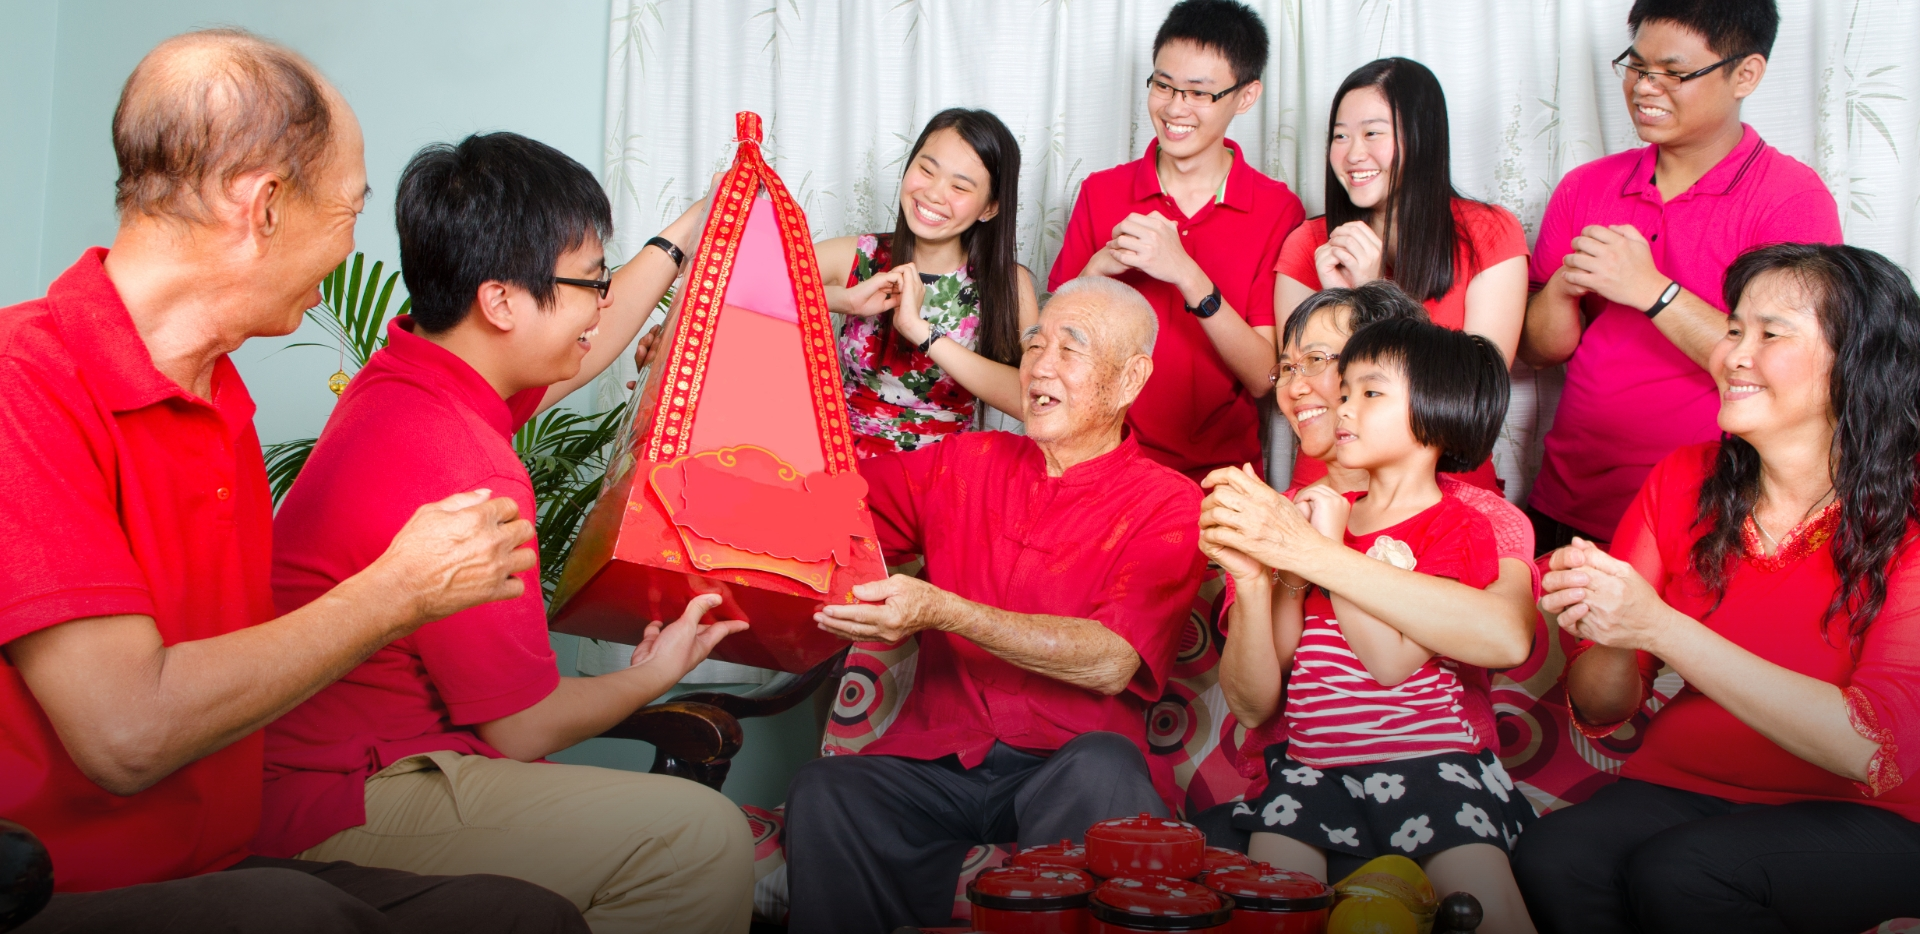 Asian family all dressed in red and gold surround grandfather as grandson gives him a gift commemorating traditional holiday